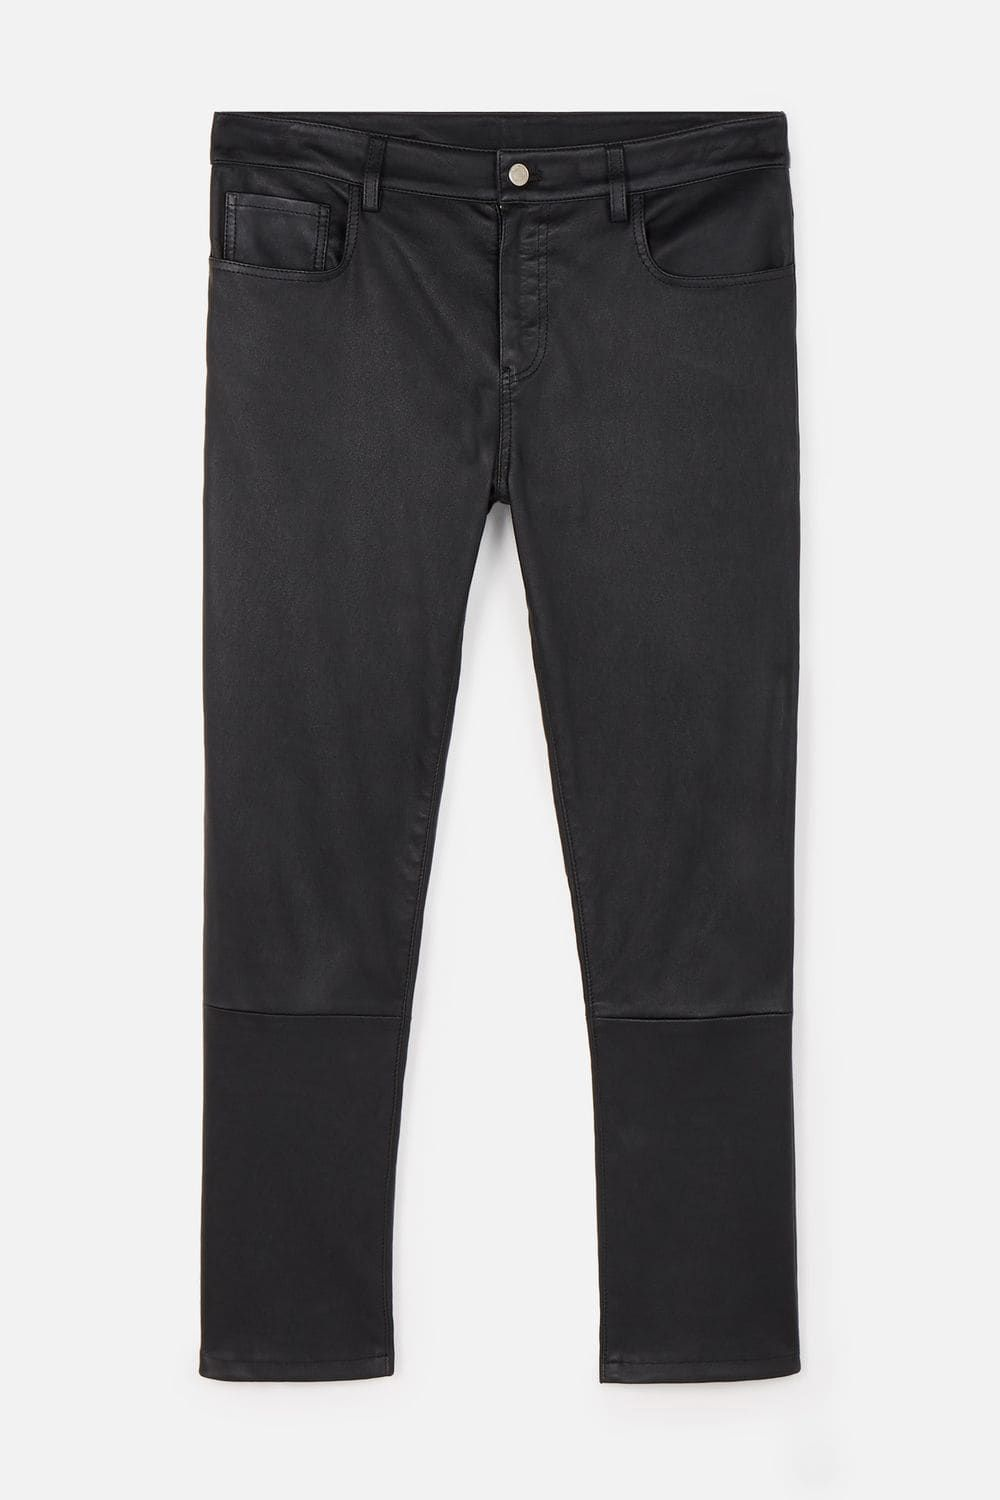 Ami Alexandre Mattiussi 5 Pockets Leather Pants In Smooth Leather AMI PARIS  Couro Liso 7260129b6cd